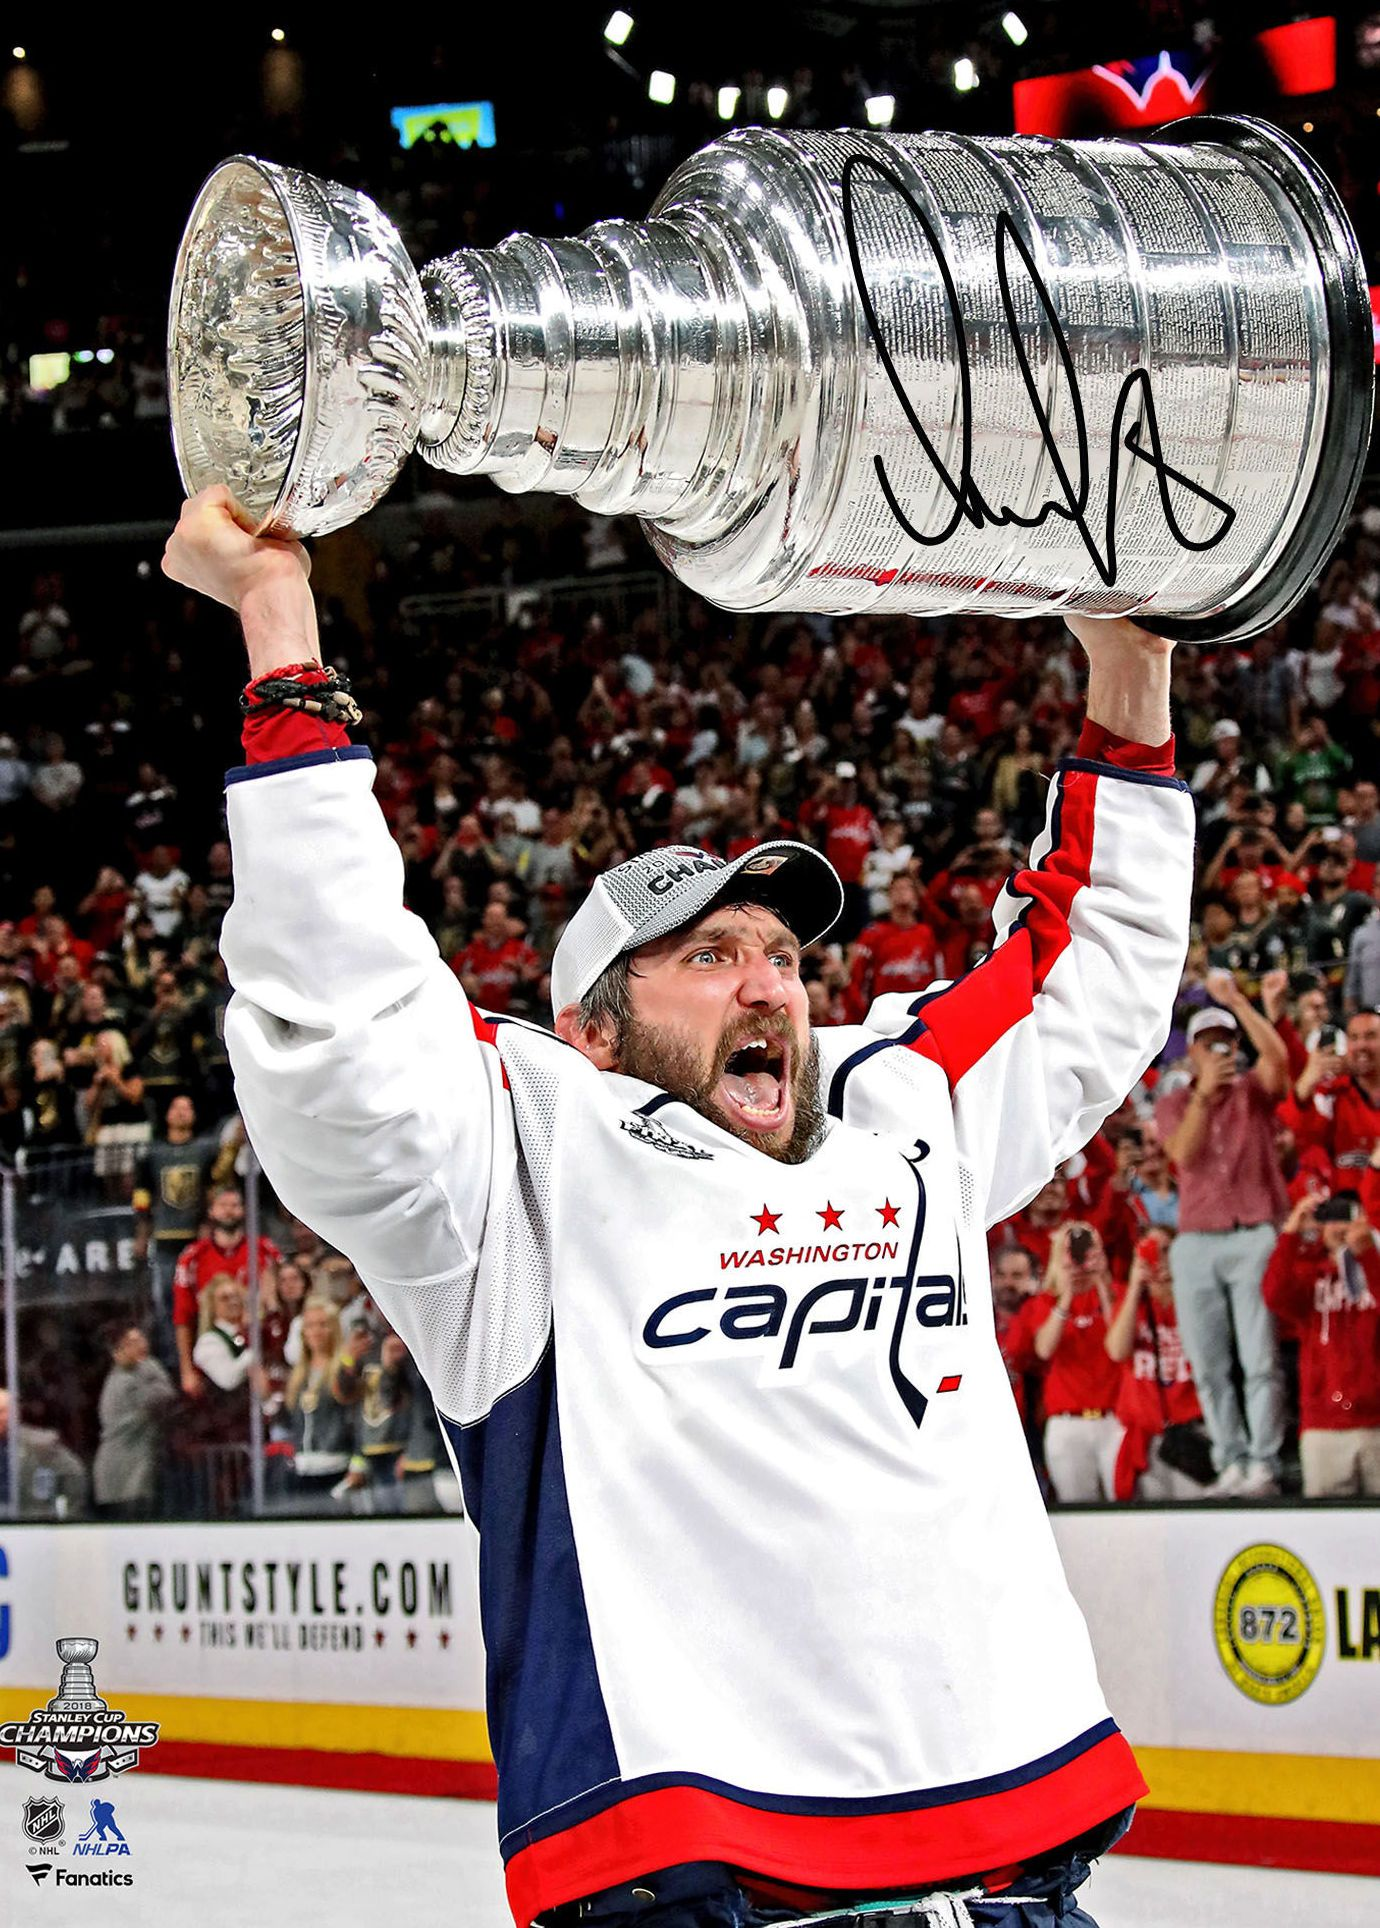 Pin By Bruce C On Hockey Alex Ovechkin Stanley Cup Champions